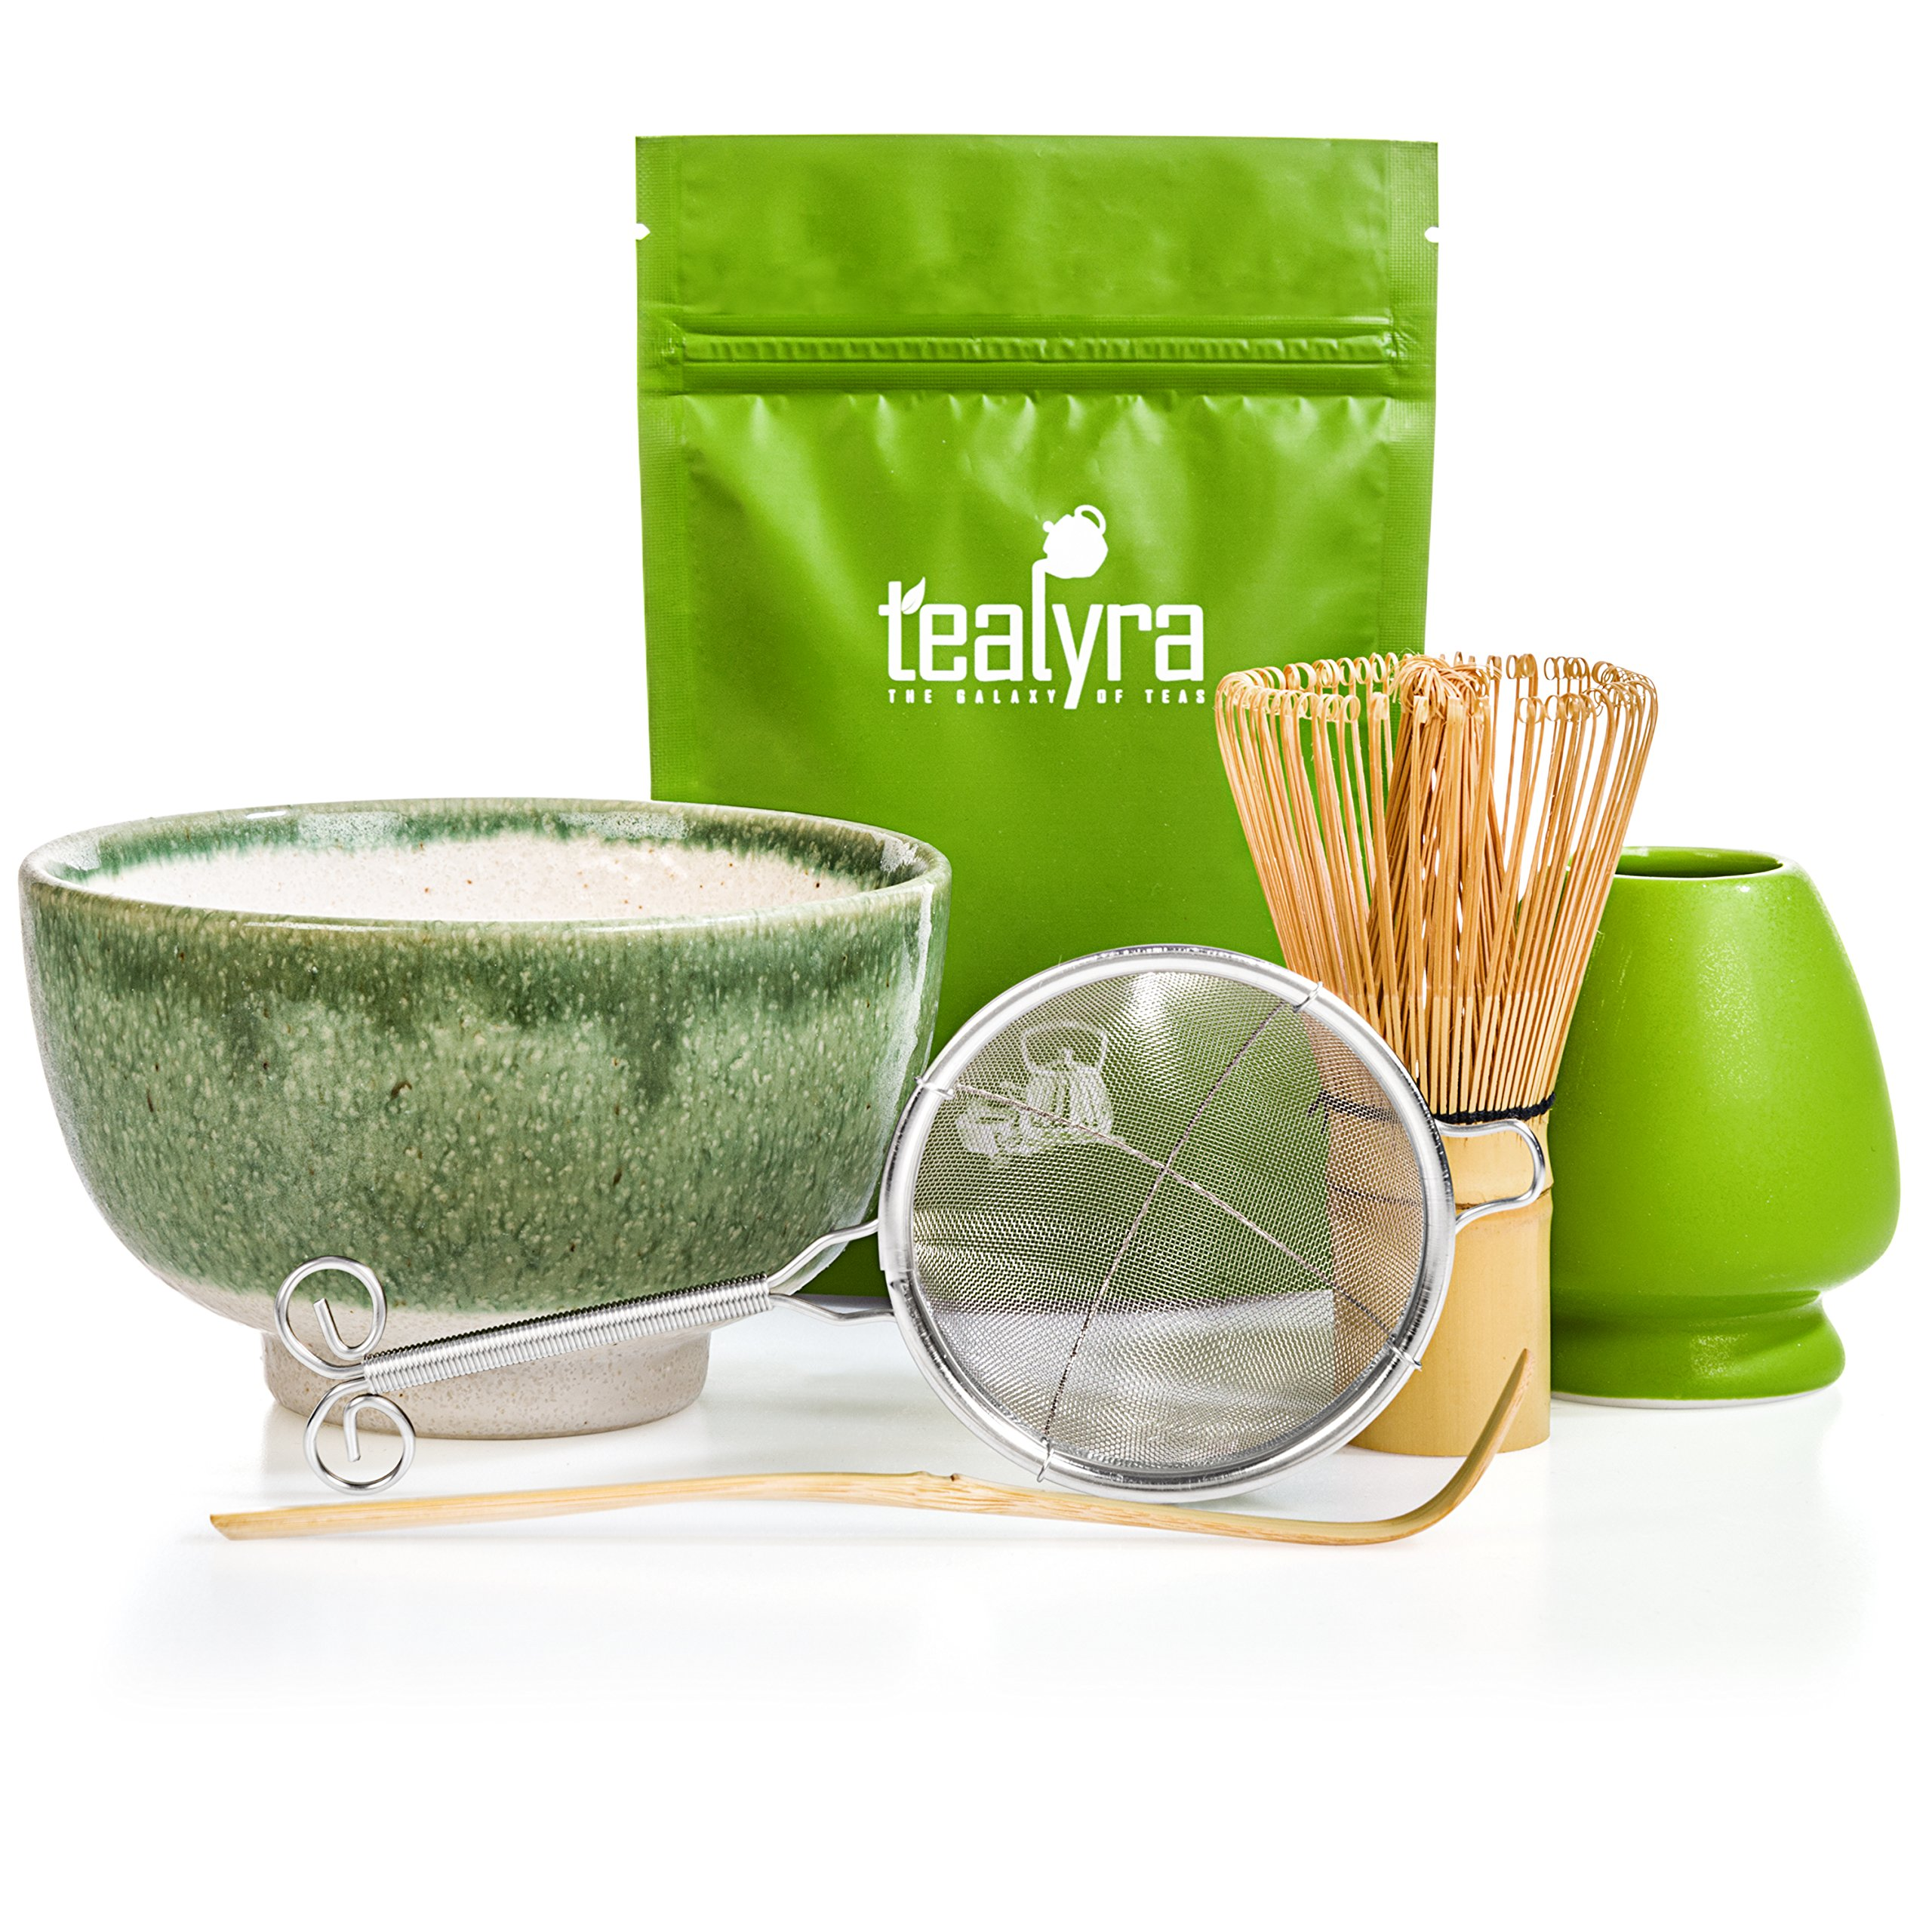 Tealyra - Matcha Tea Ceremony Start Up Kit - Complete Matcha Green Tea Gift Set - Premium Matcha Powder - Japanese Made Green Bowl - Bamboo Whisk and Scoop - Holder - Sifter - Gift Box